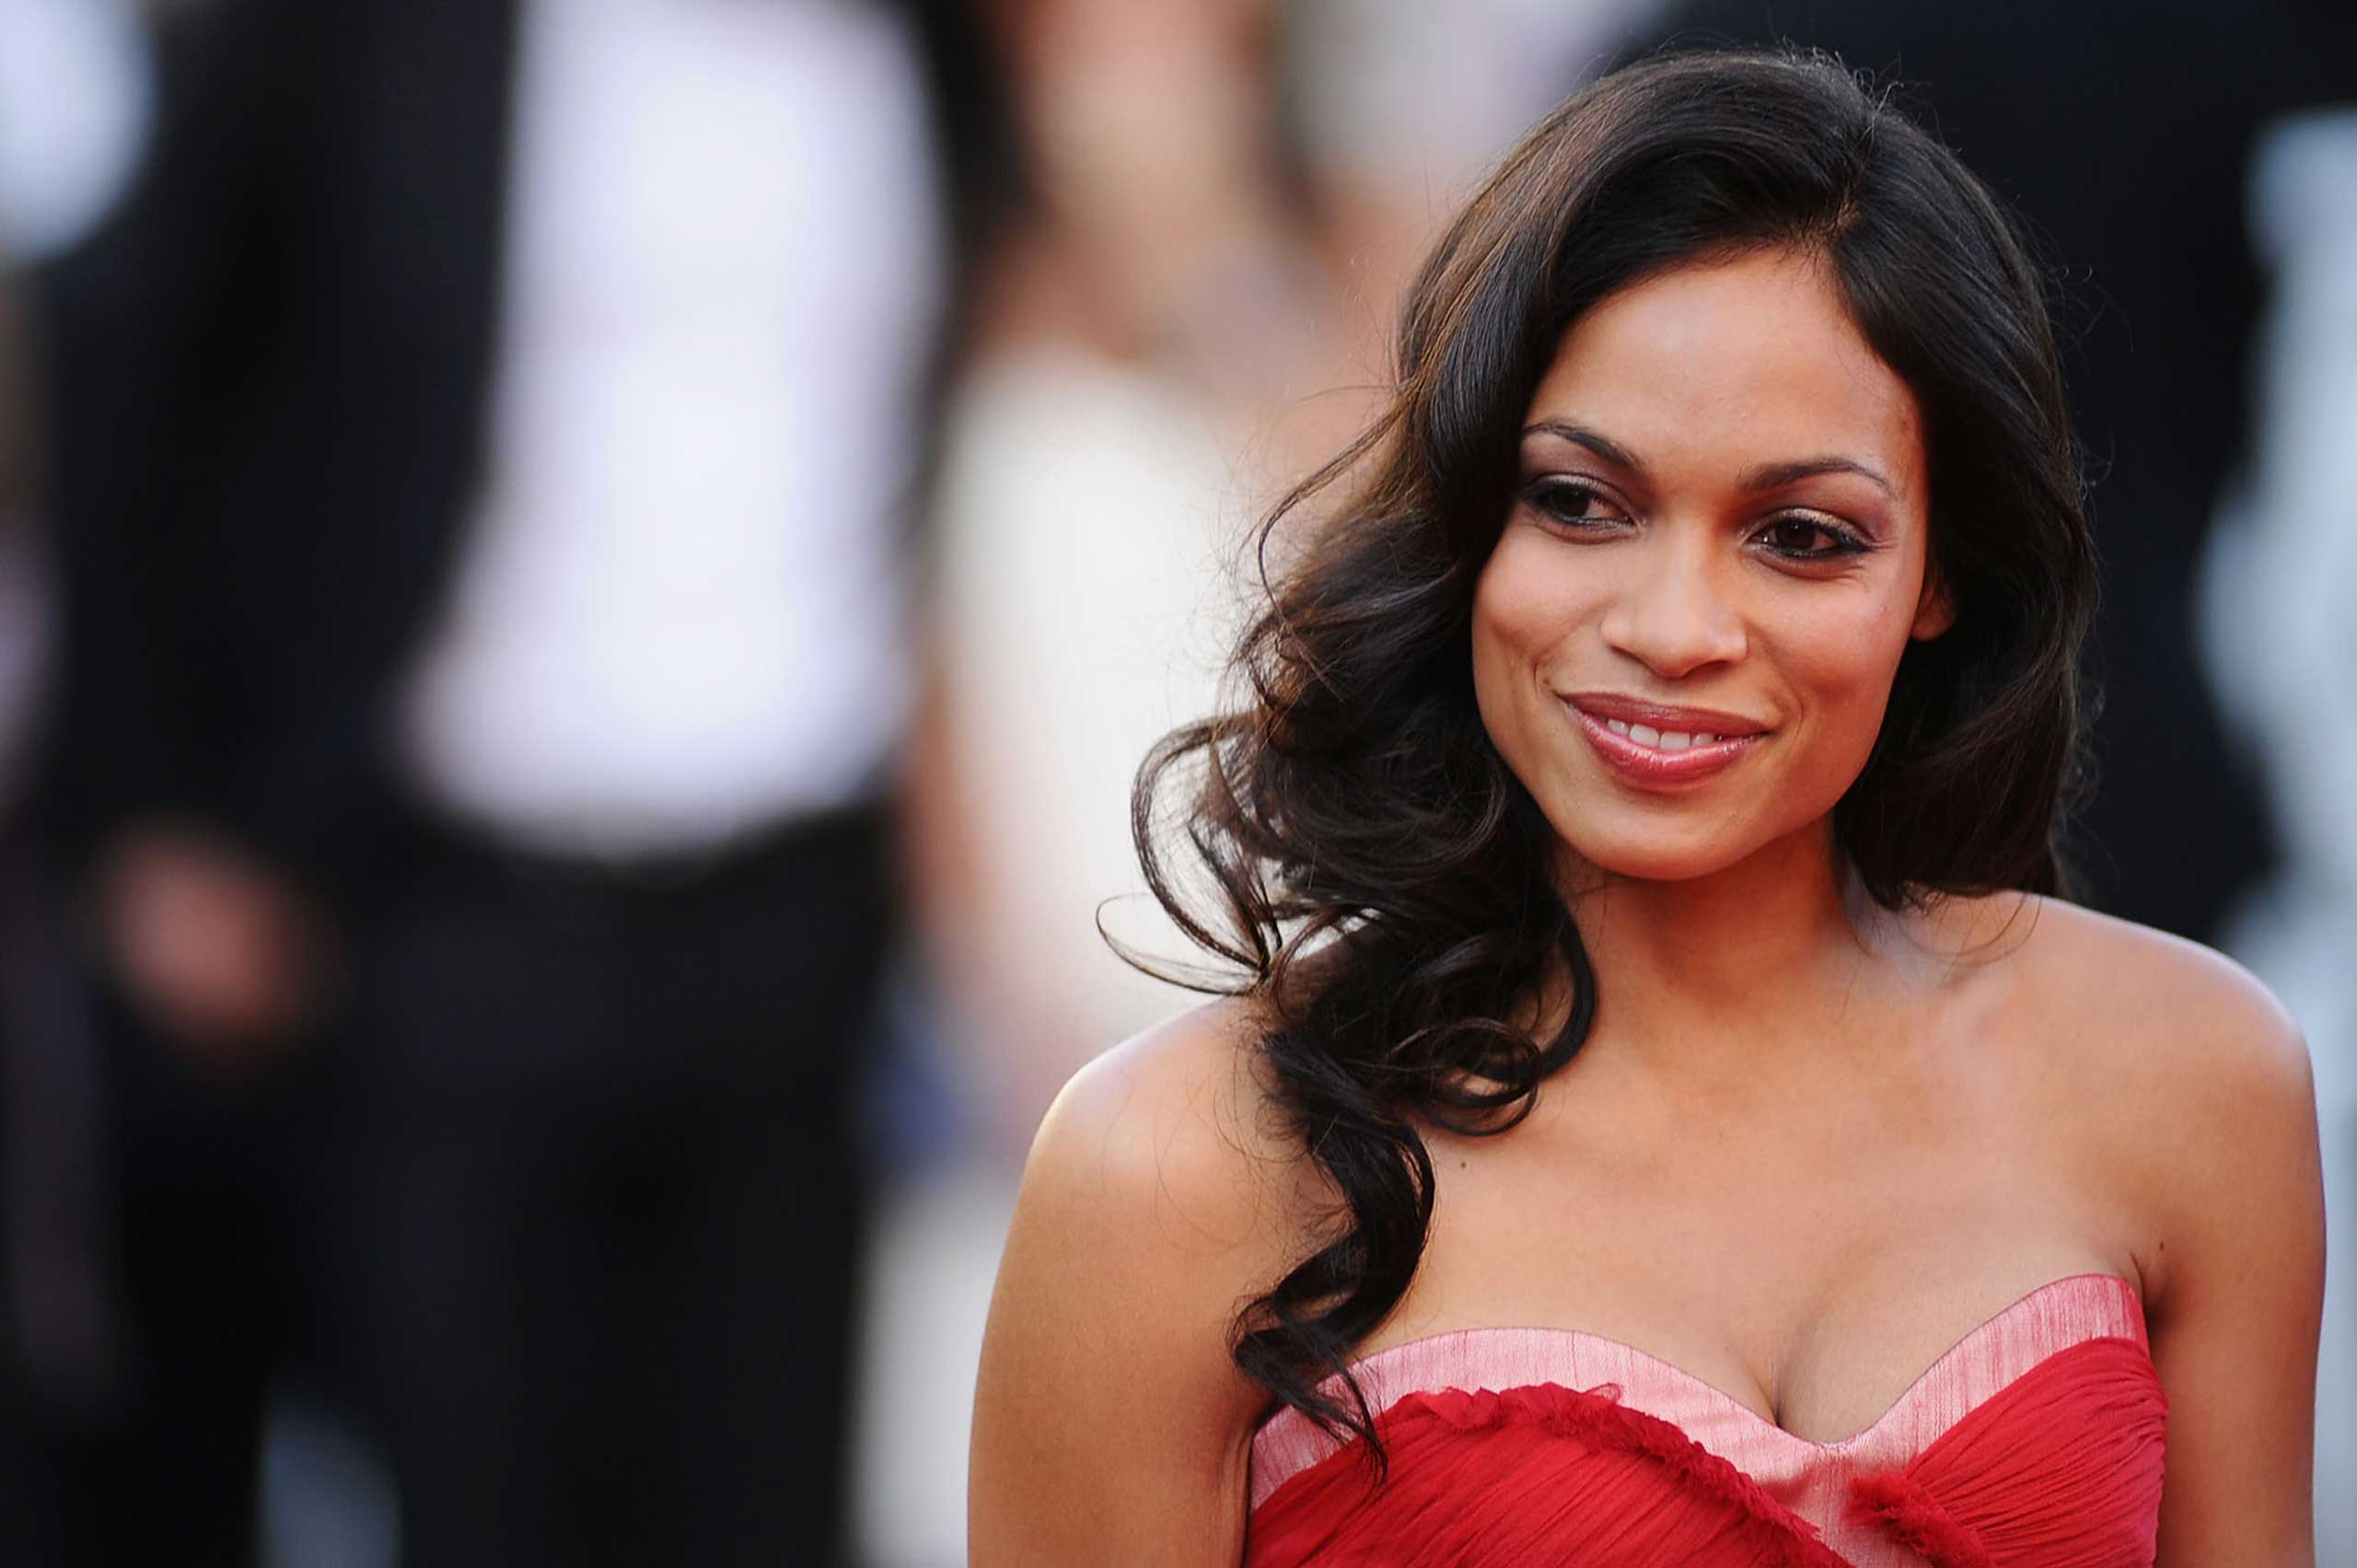 <b>Rosario Dawson</b> The Hollywood starlet was born in New York City to a mother of Puerto Rican and Afro-Cuban descent.